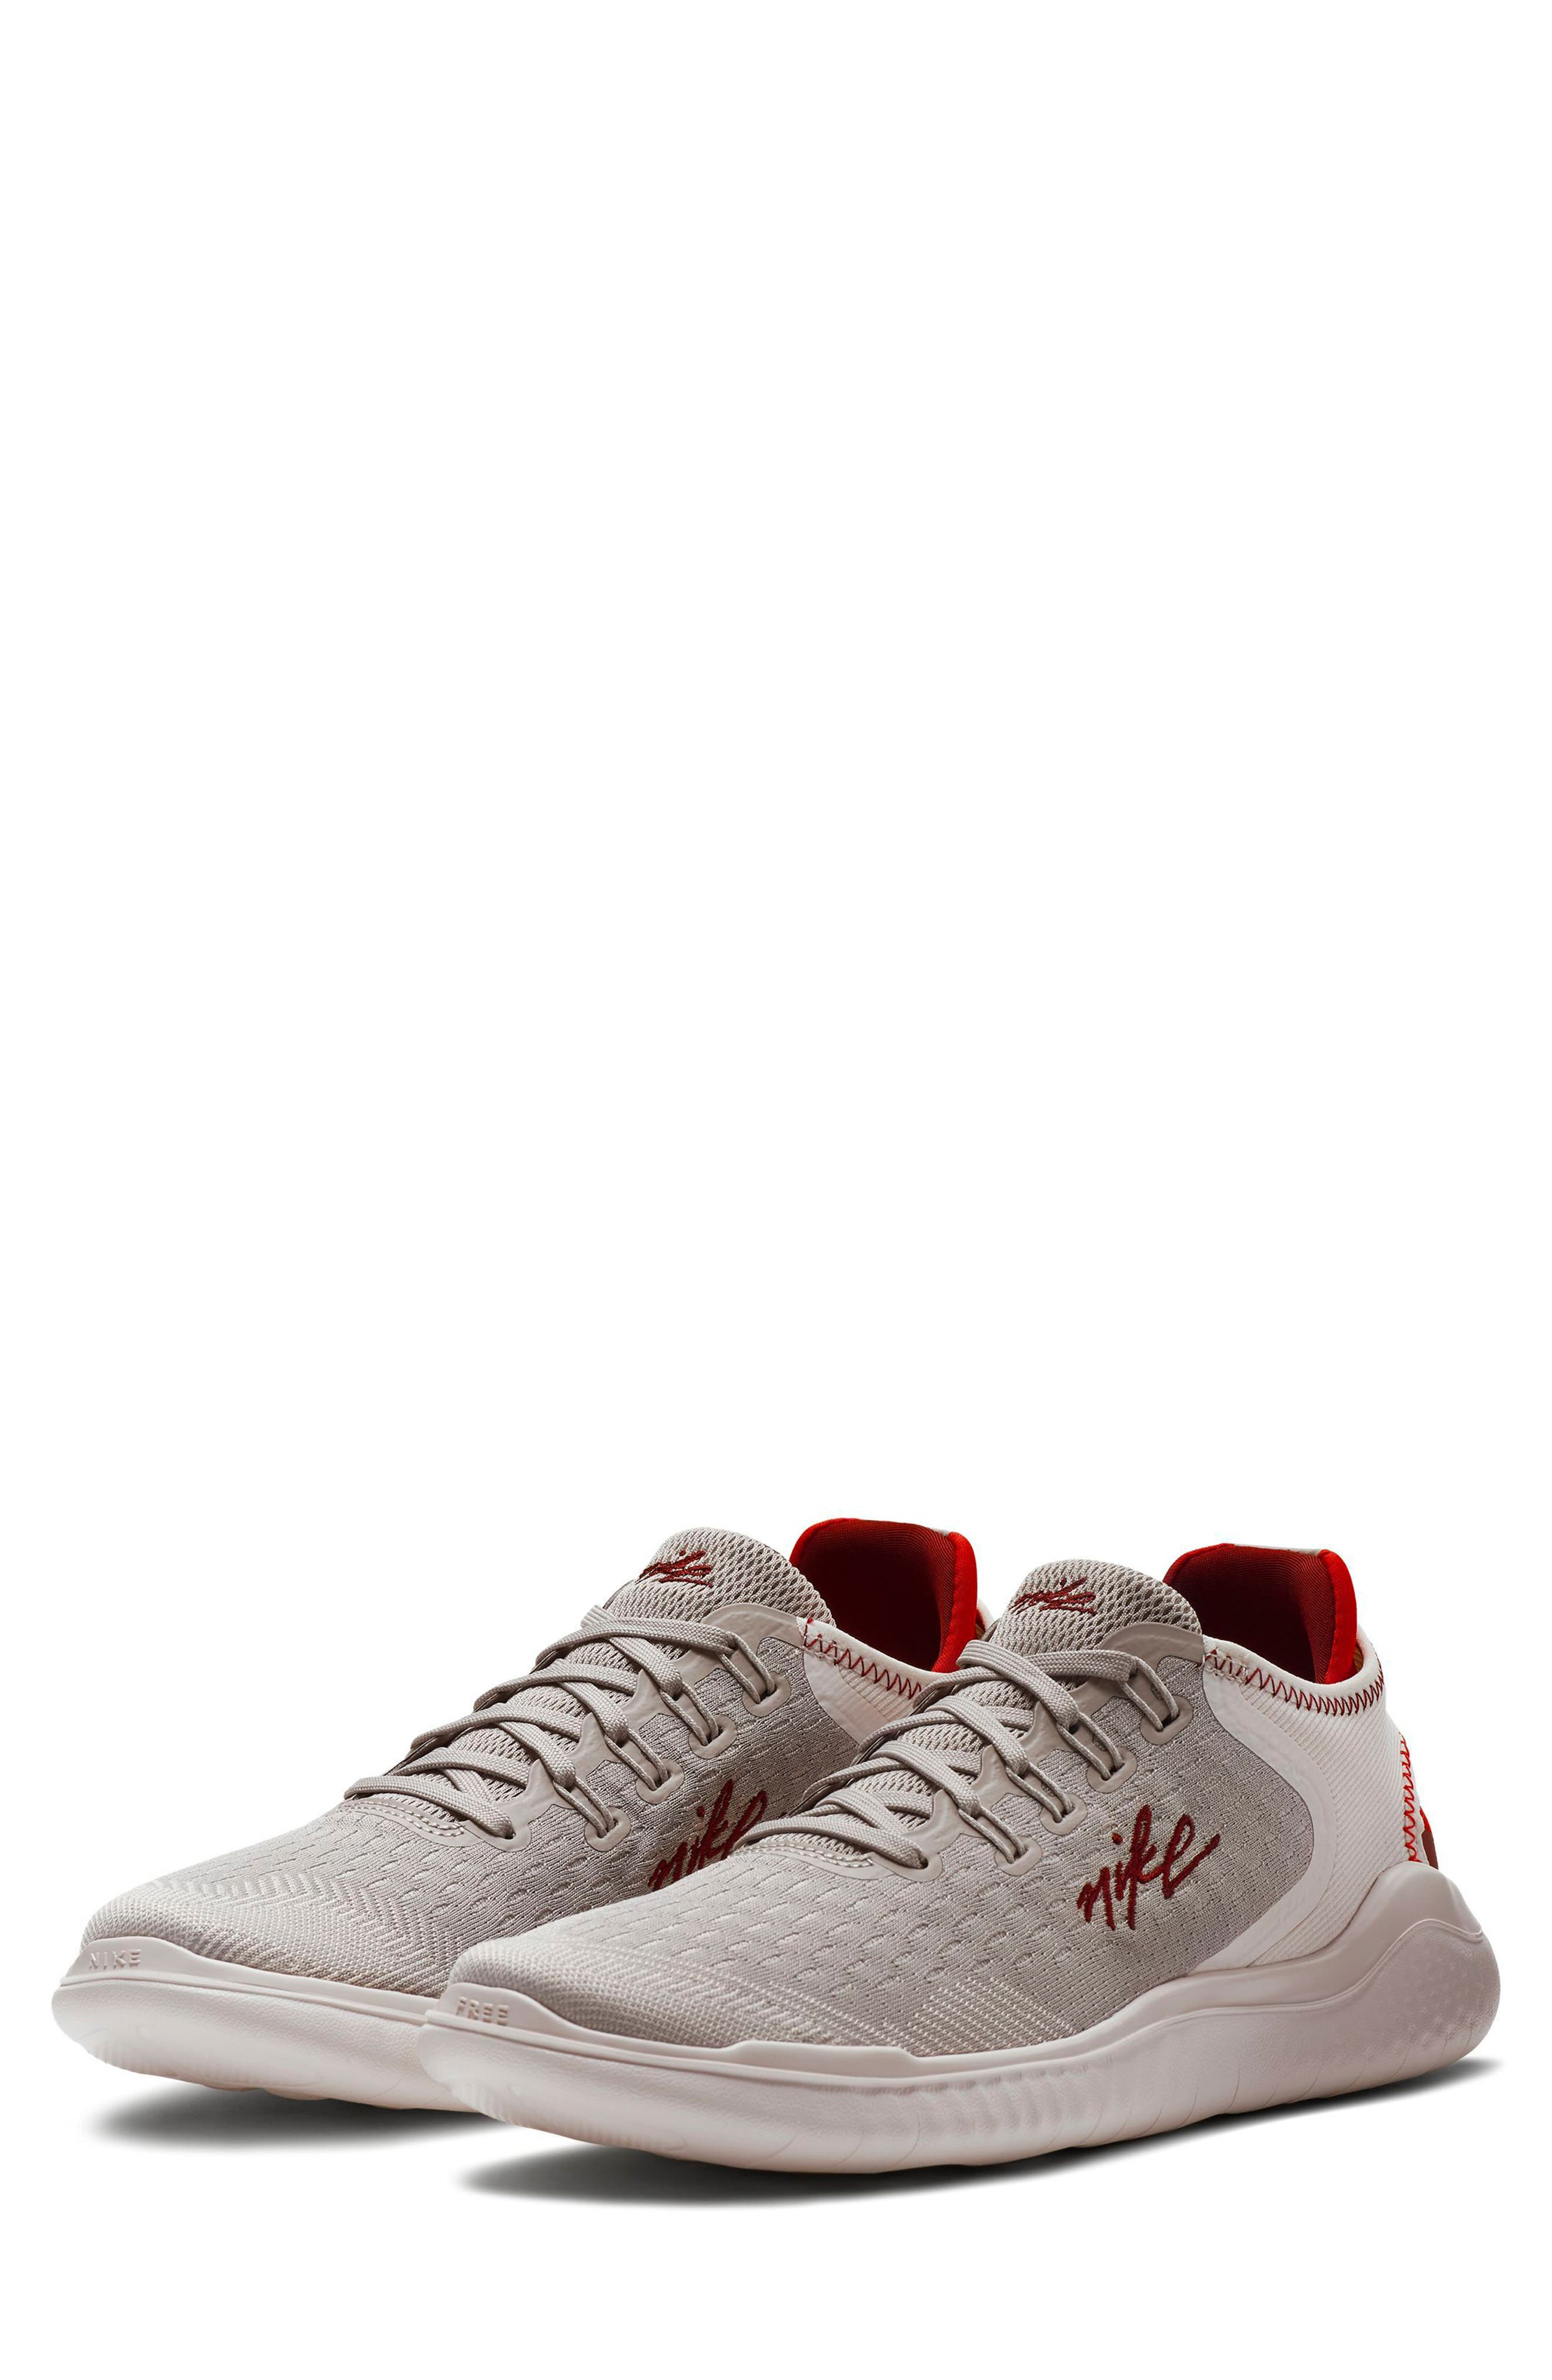 Free RN 2018 Running Shoe,                             Main thumbnail 1, color,                             Moon Particle/ Team Red